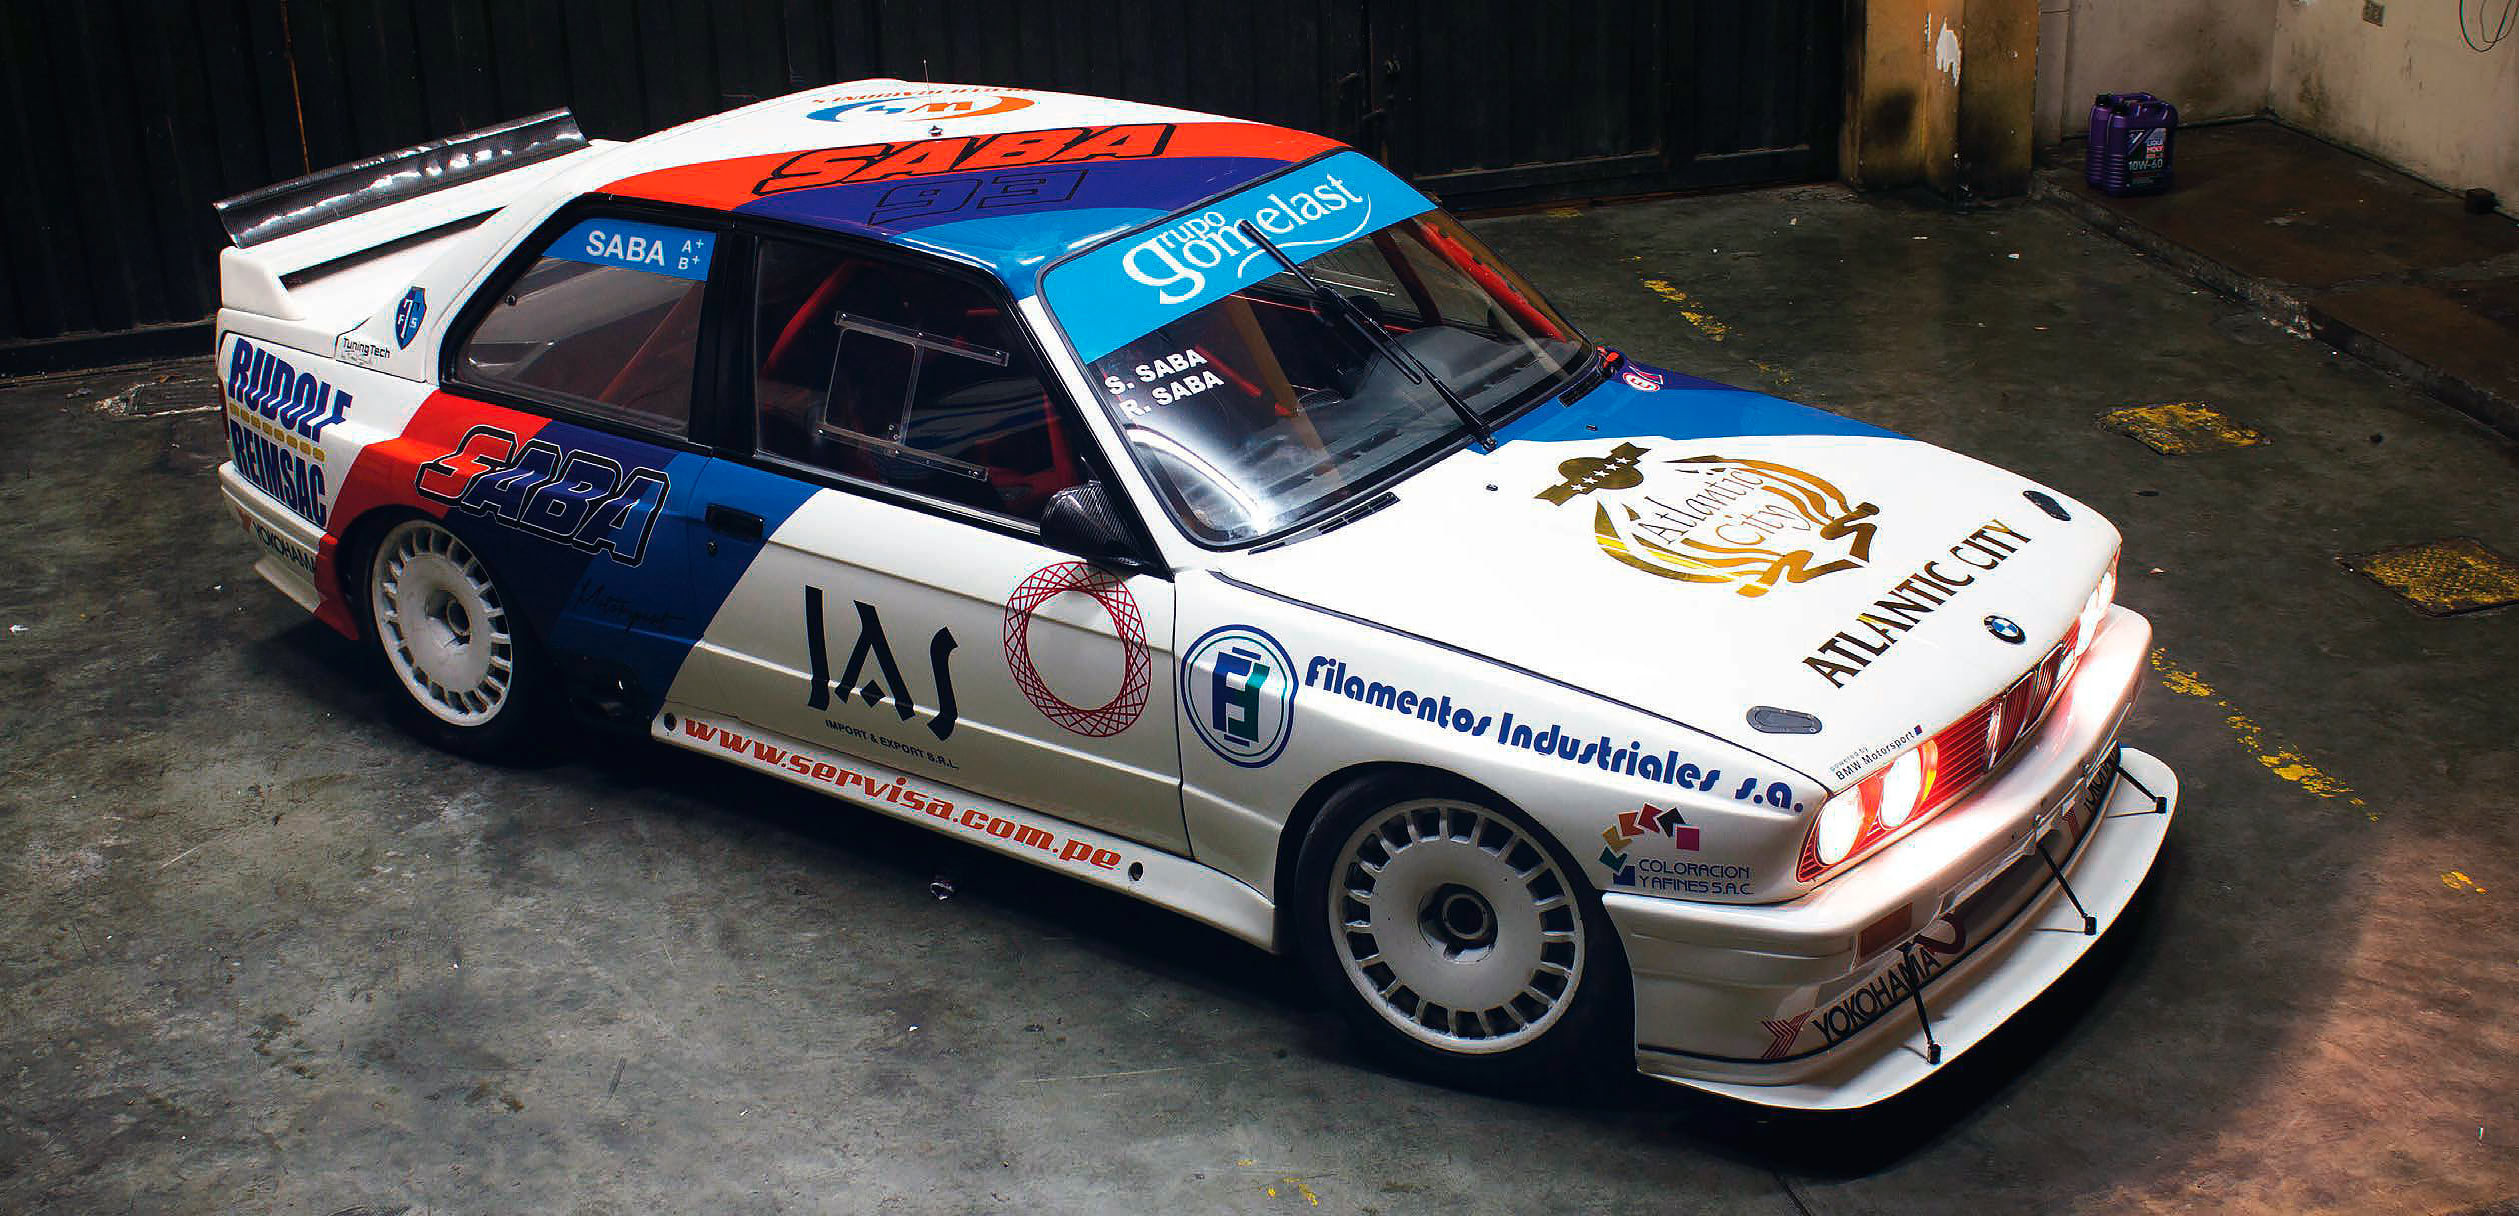 bmw m3 e30 dtm replica - drive-my blogs - drive